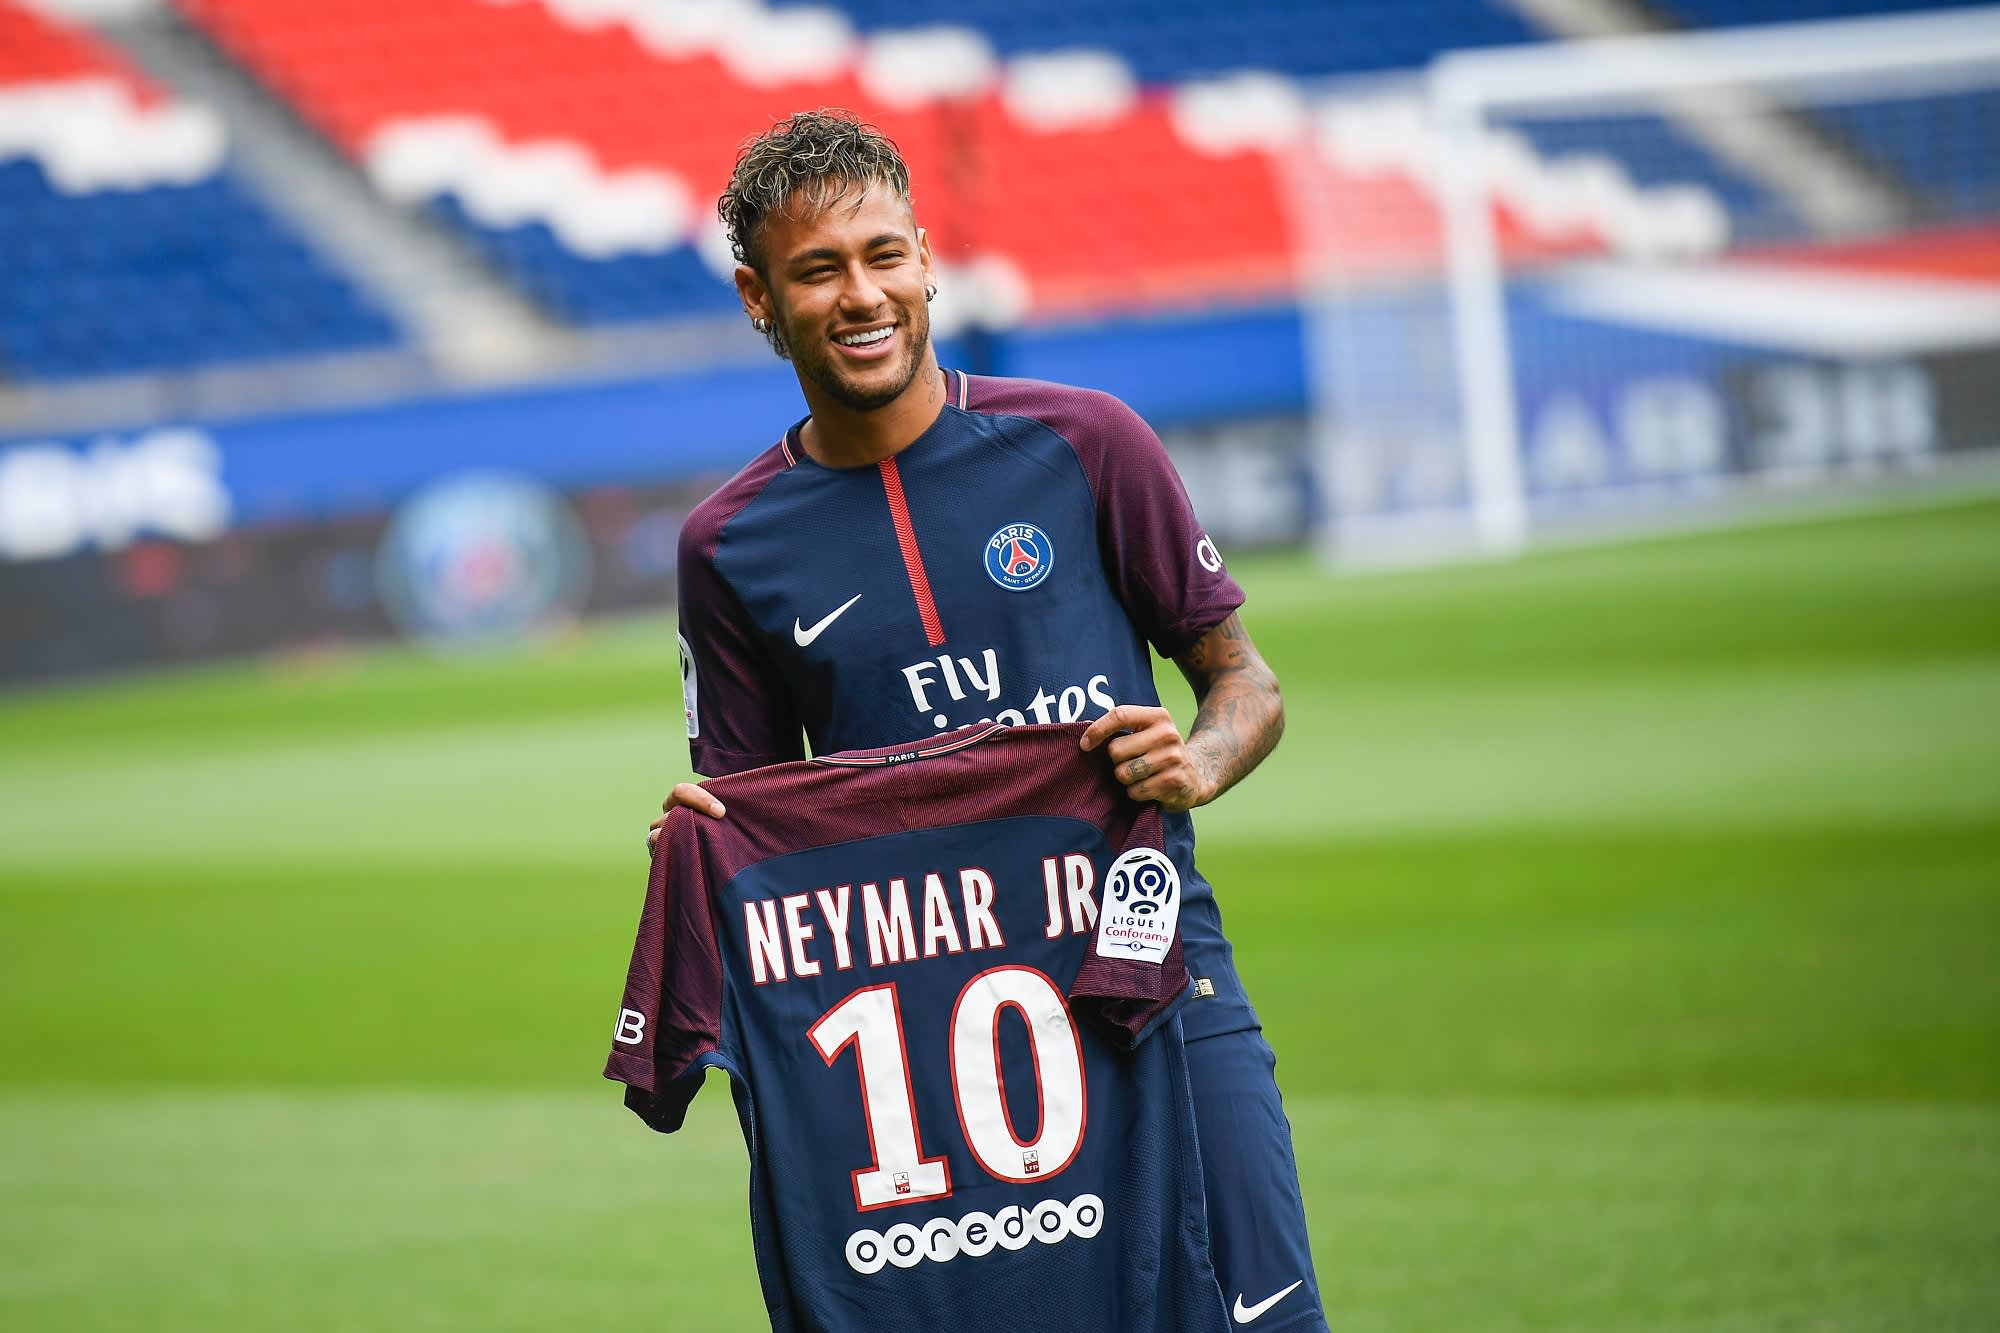 Nike says it split with soccer superstar Neymar after he refused to cooperate with sexual assault investigation